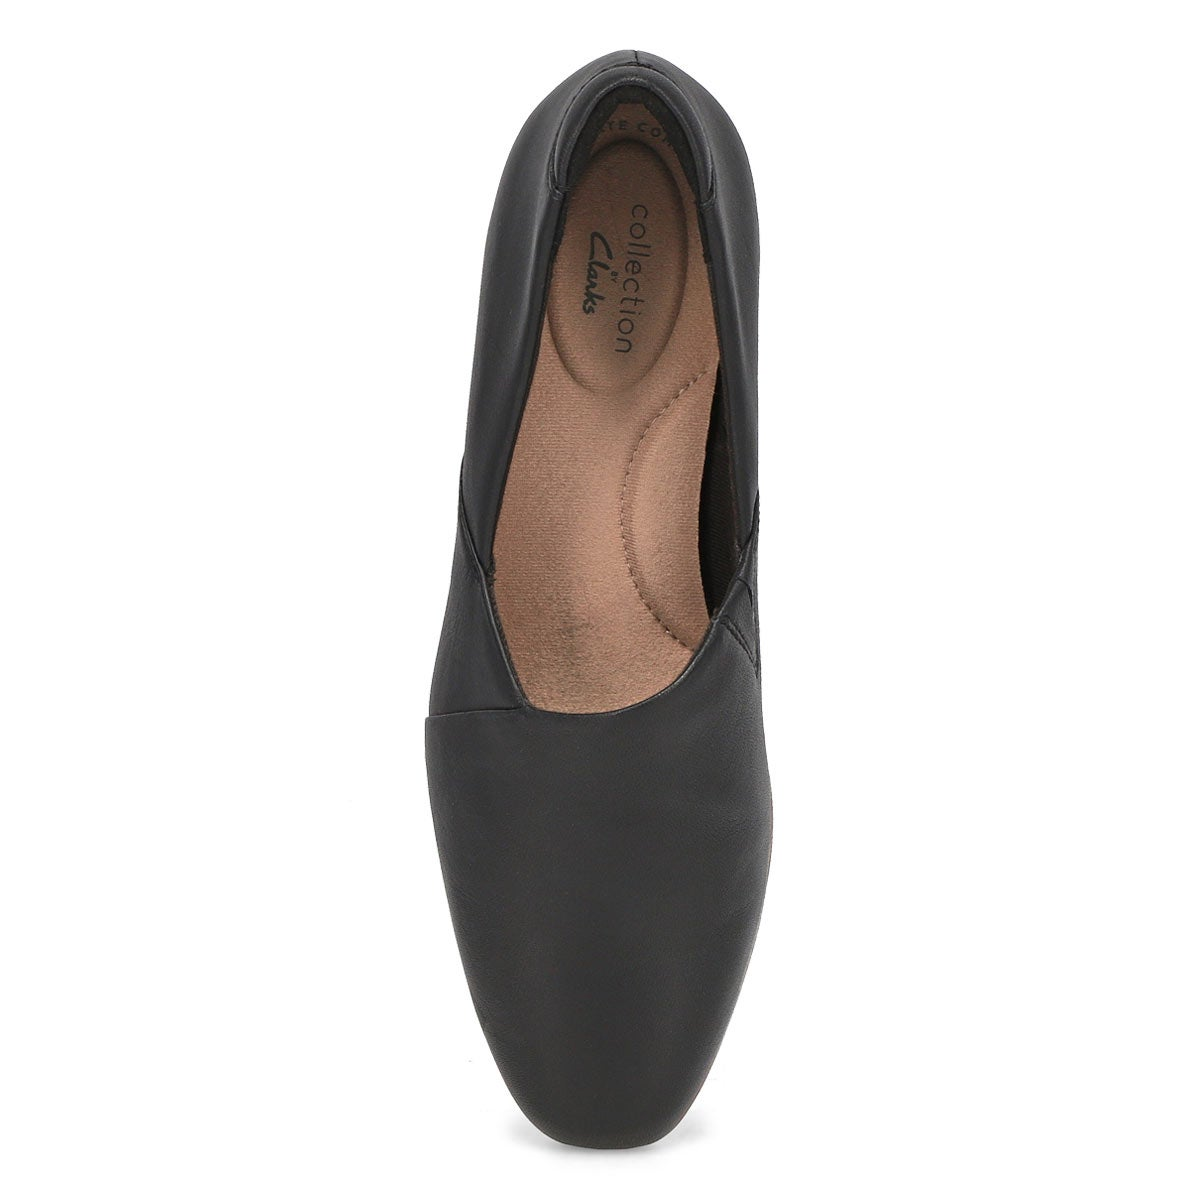 Lds Juliet Palm blk slip on dress heel